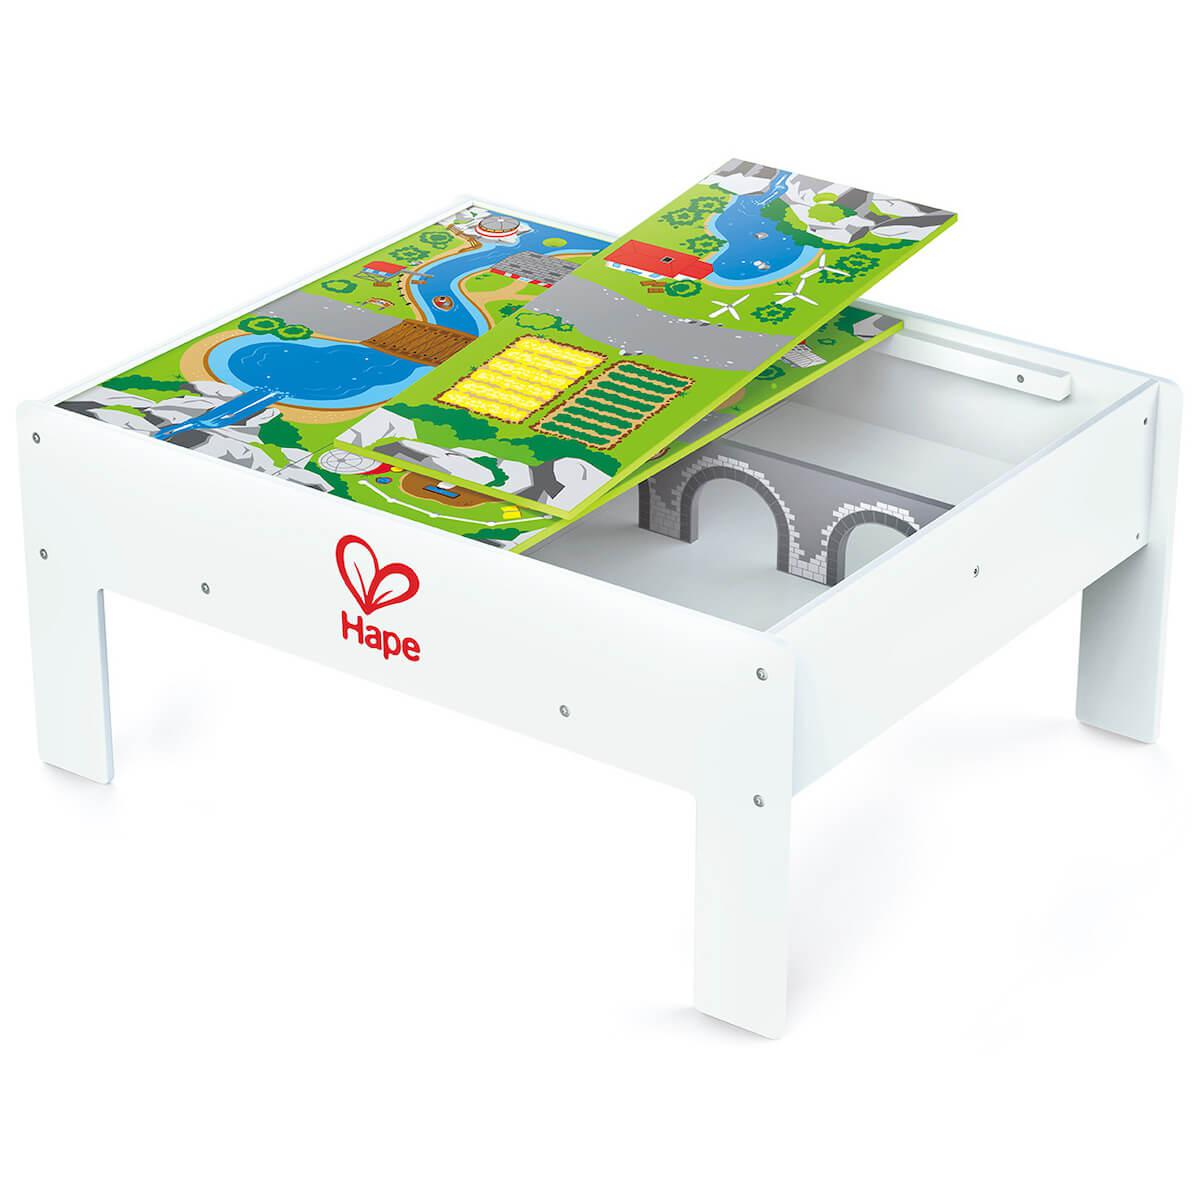 Mesa juegos PLAY AND STOW Hape